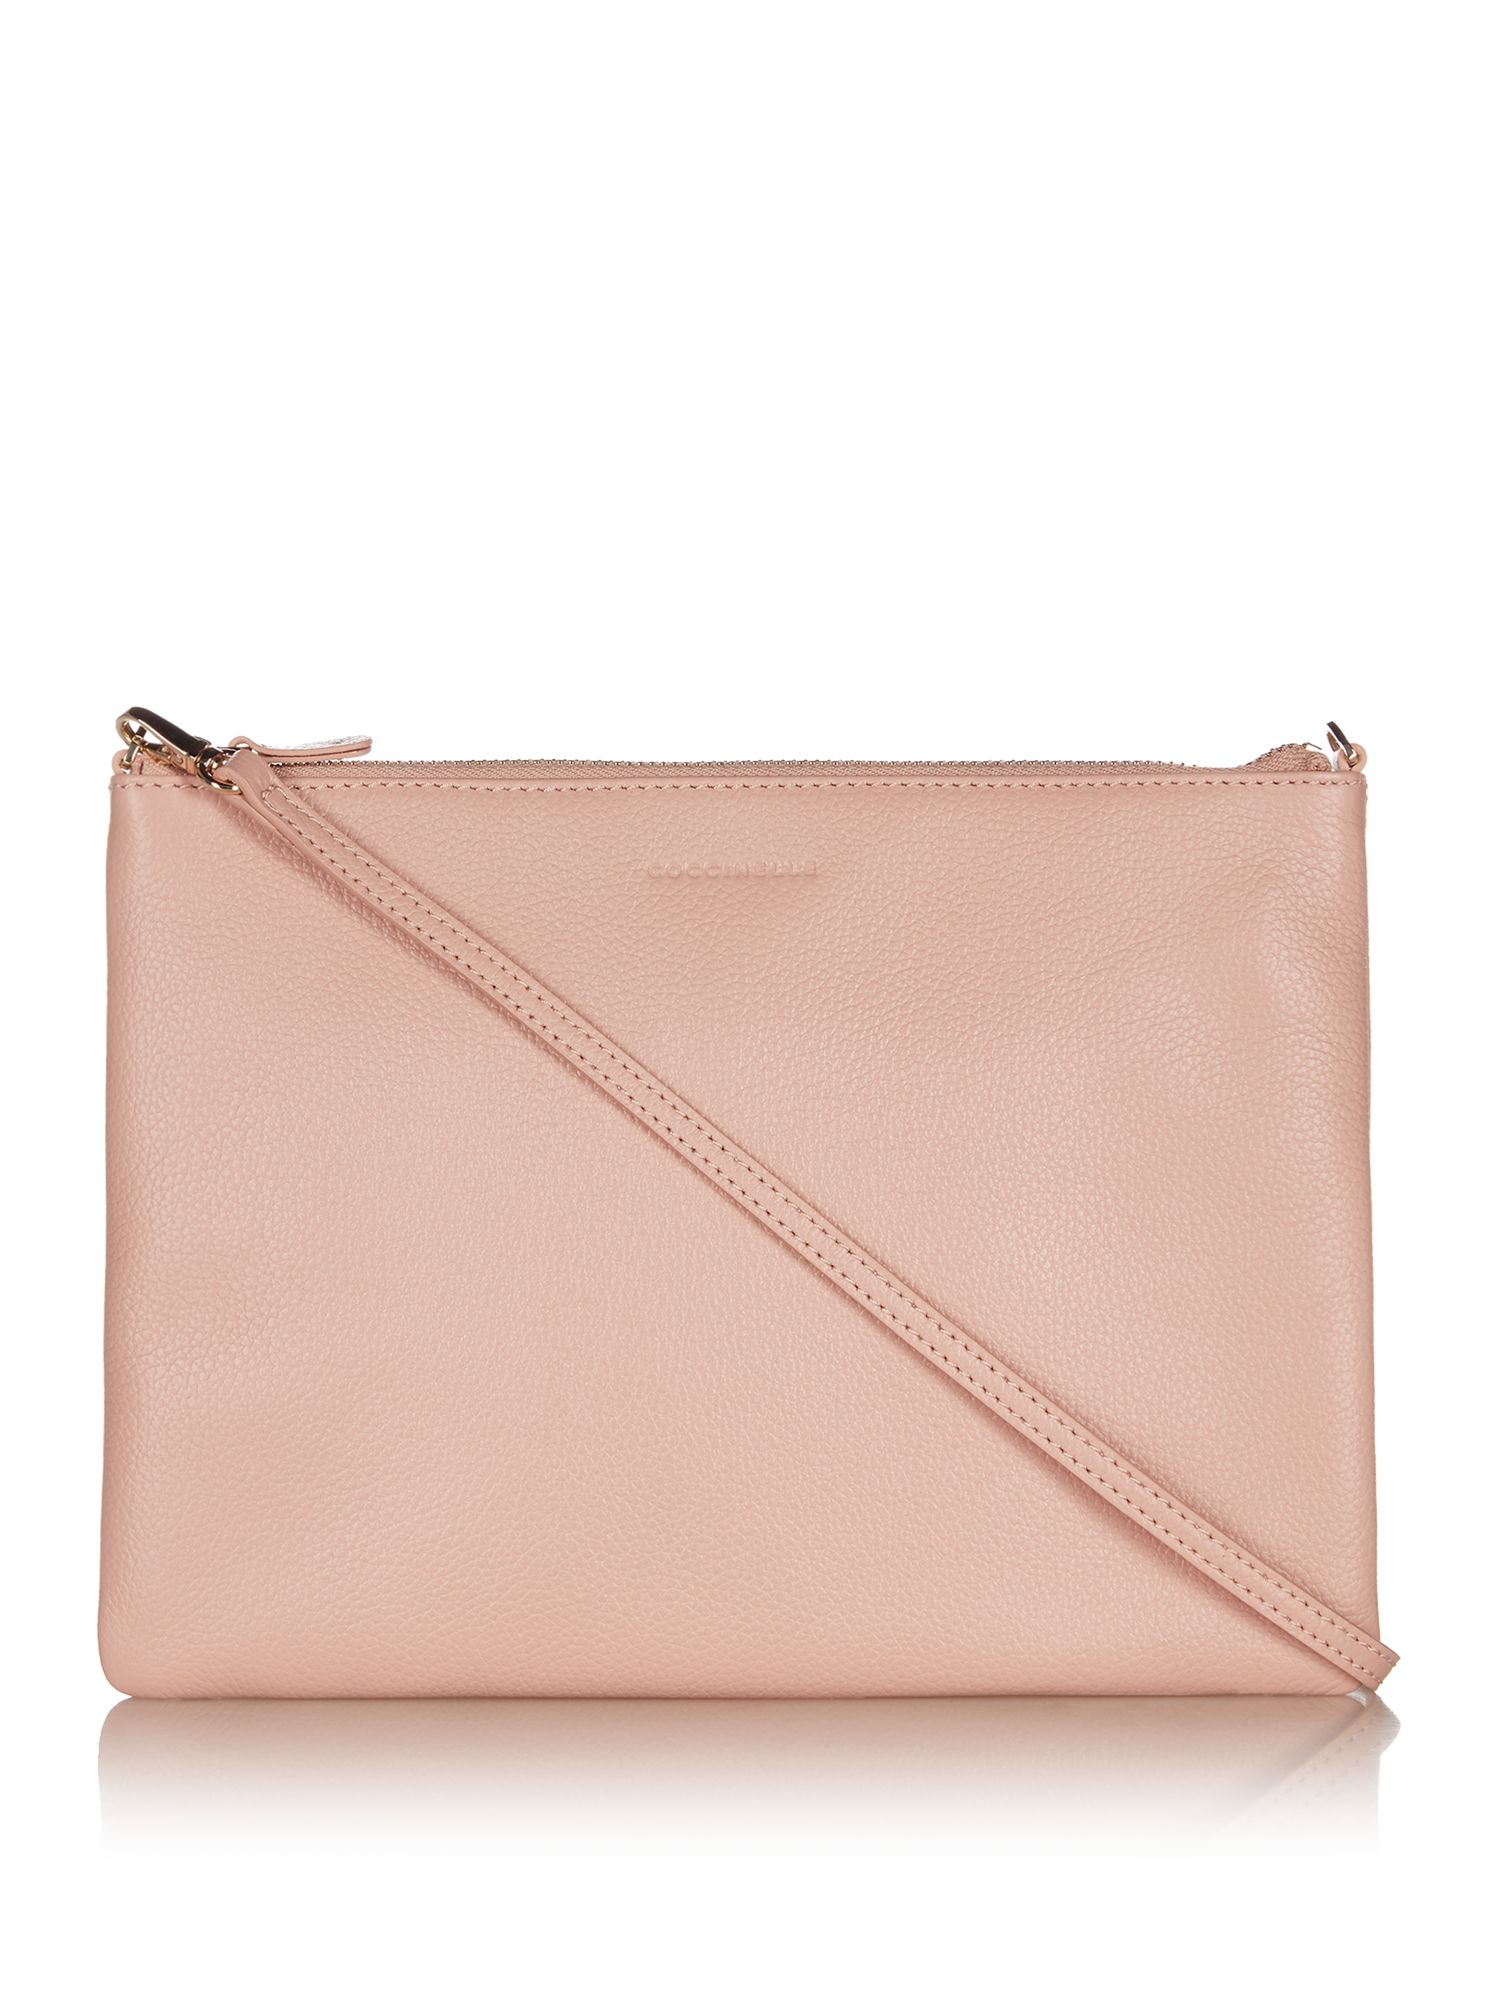 Coccinelle Best soft leather cross body pouchette, Pink